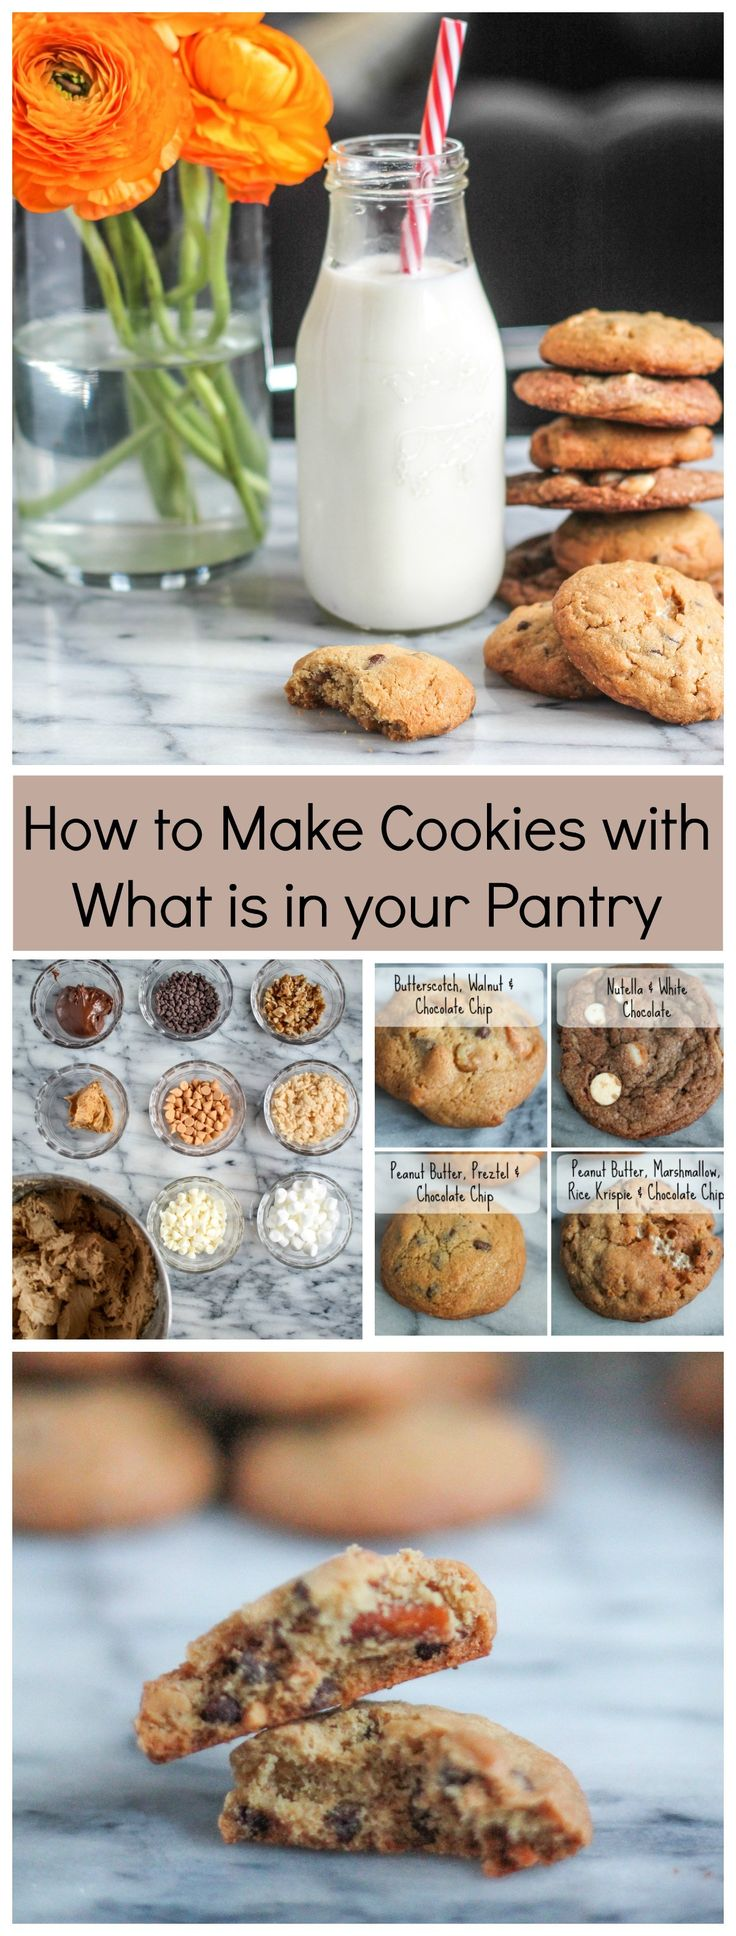 One day I was searching through my cupboard of baking ingredients, and inspiration struck. I had all sorts of chocolate chips, butterscotch chips, white chocolate chips, nuts, and other ingredients. What if I mixed up classic chocolate chip cookies, but instead of just adding the chocolate chips, I got a bit more creative. This is (read more)